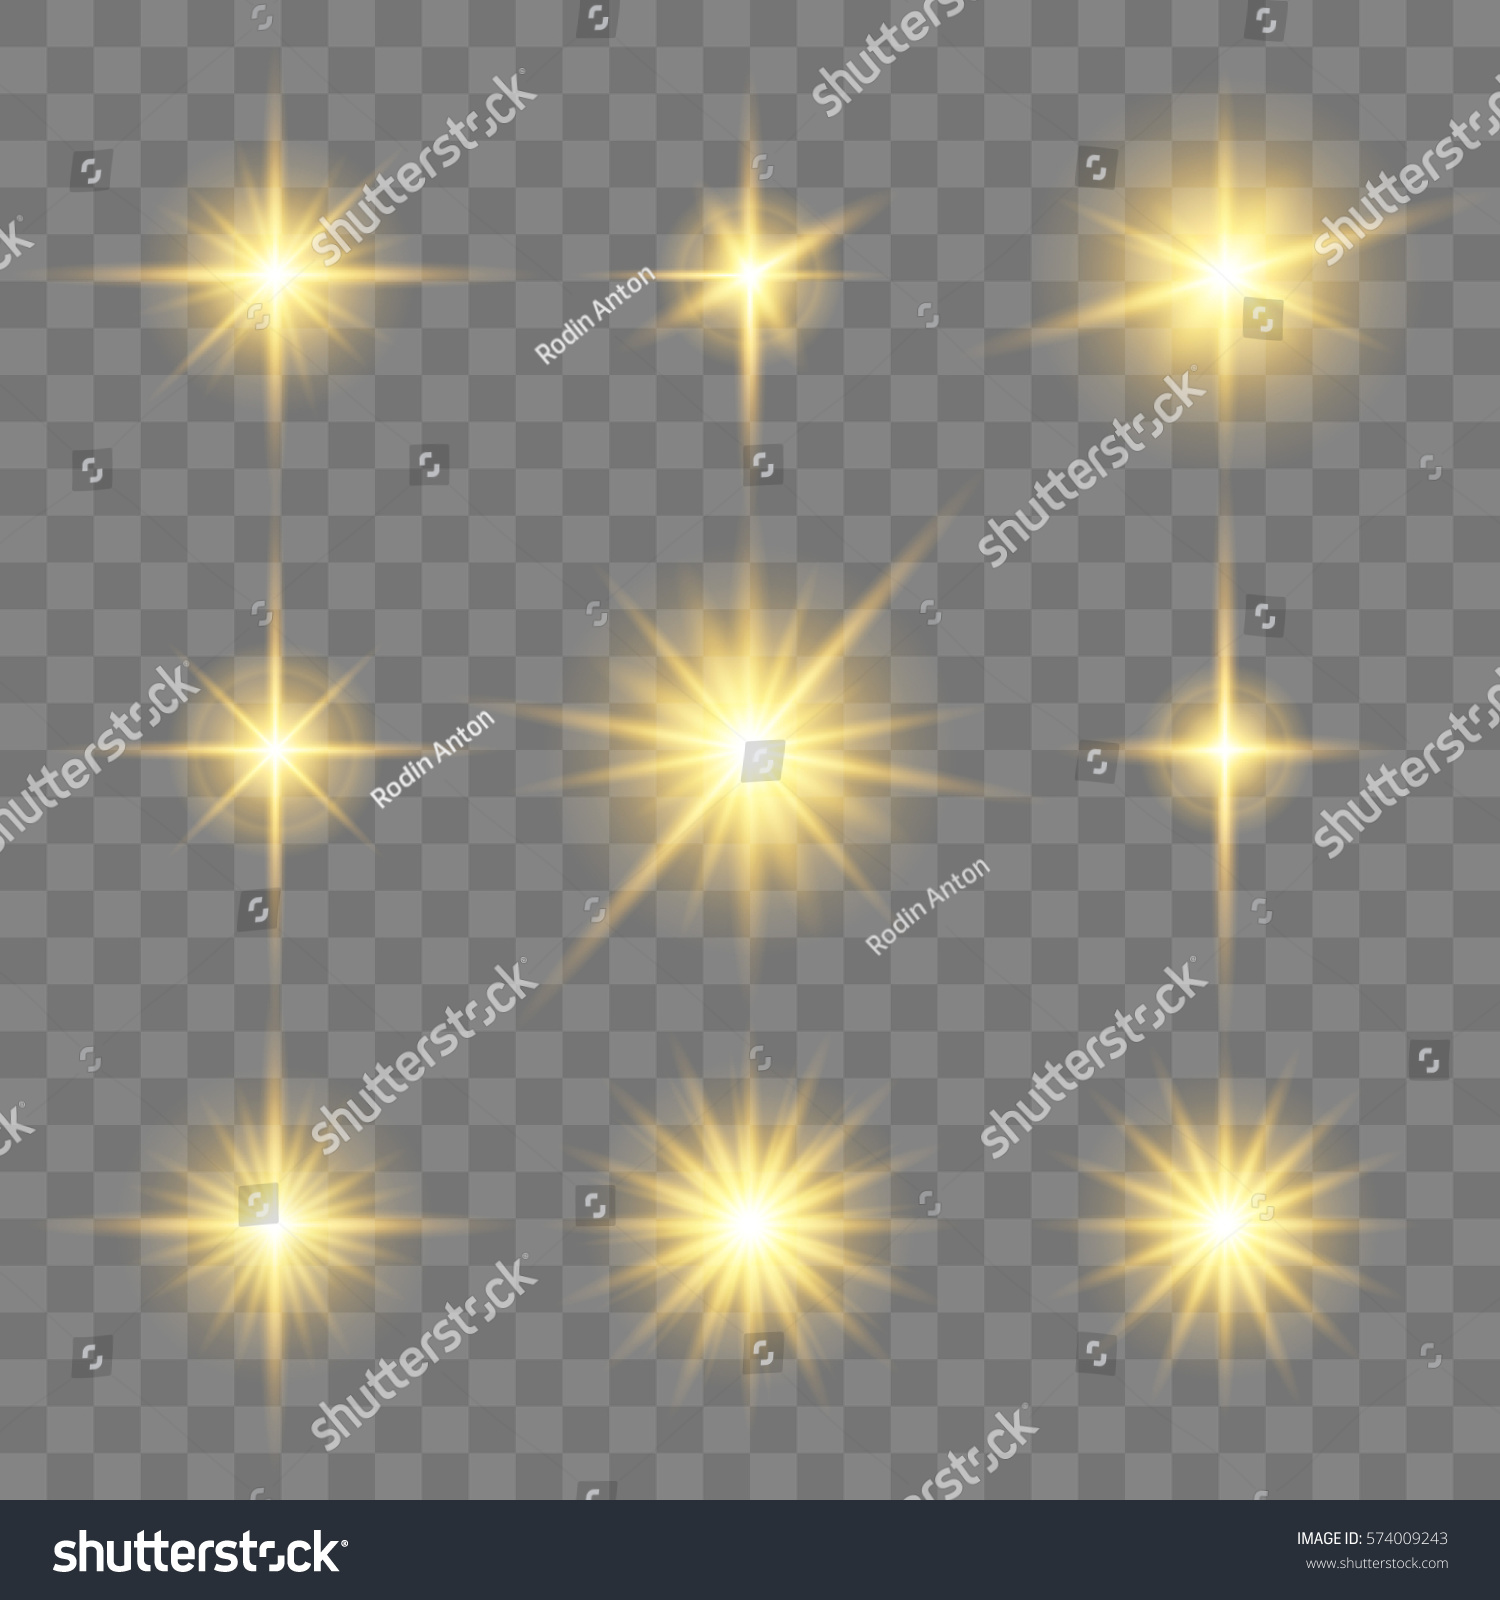 Set Golden Glowing Star Vector Light Stock Vector 574009243 ...